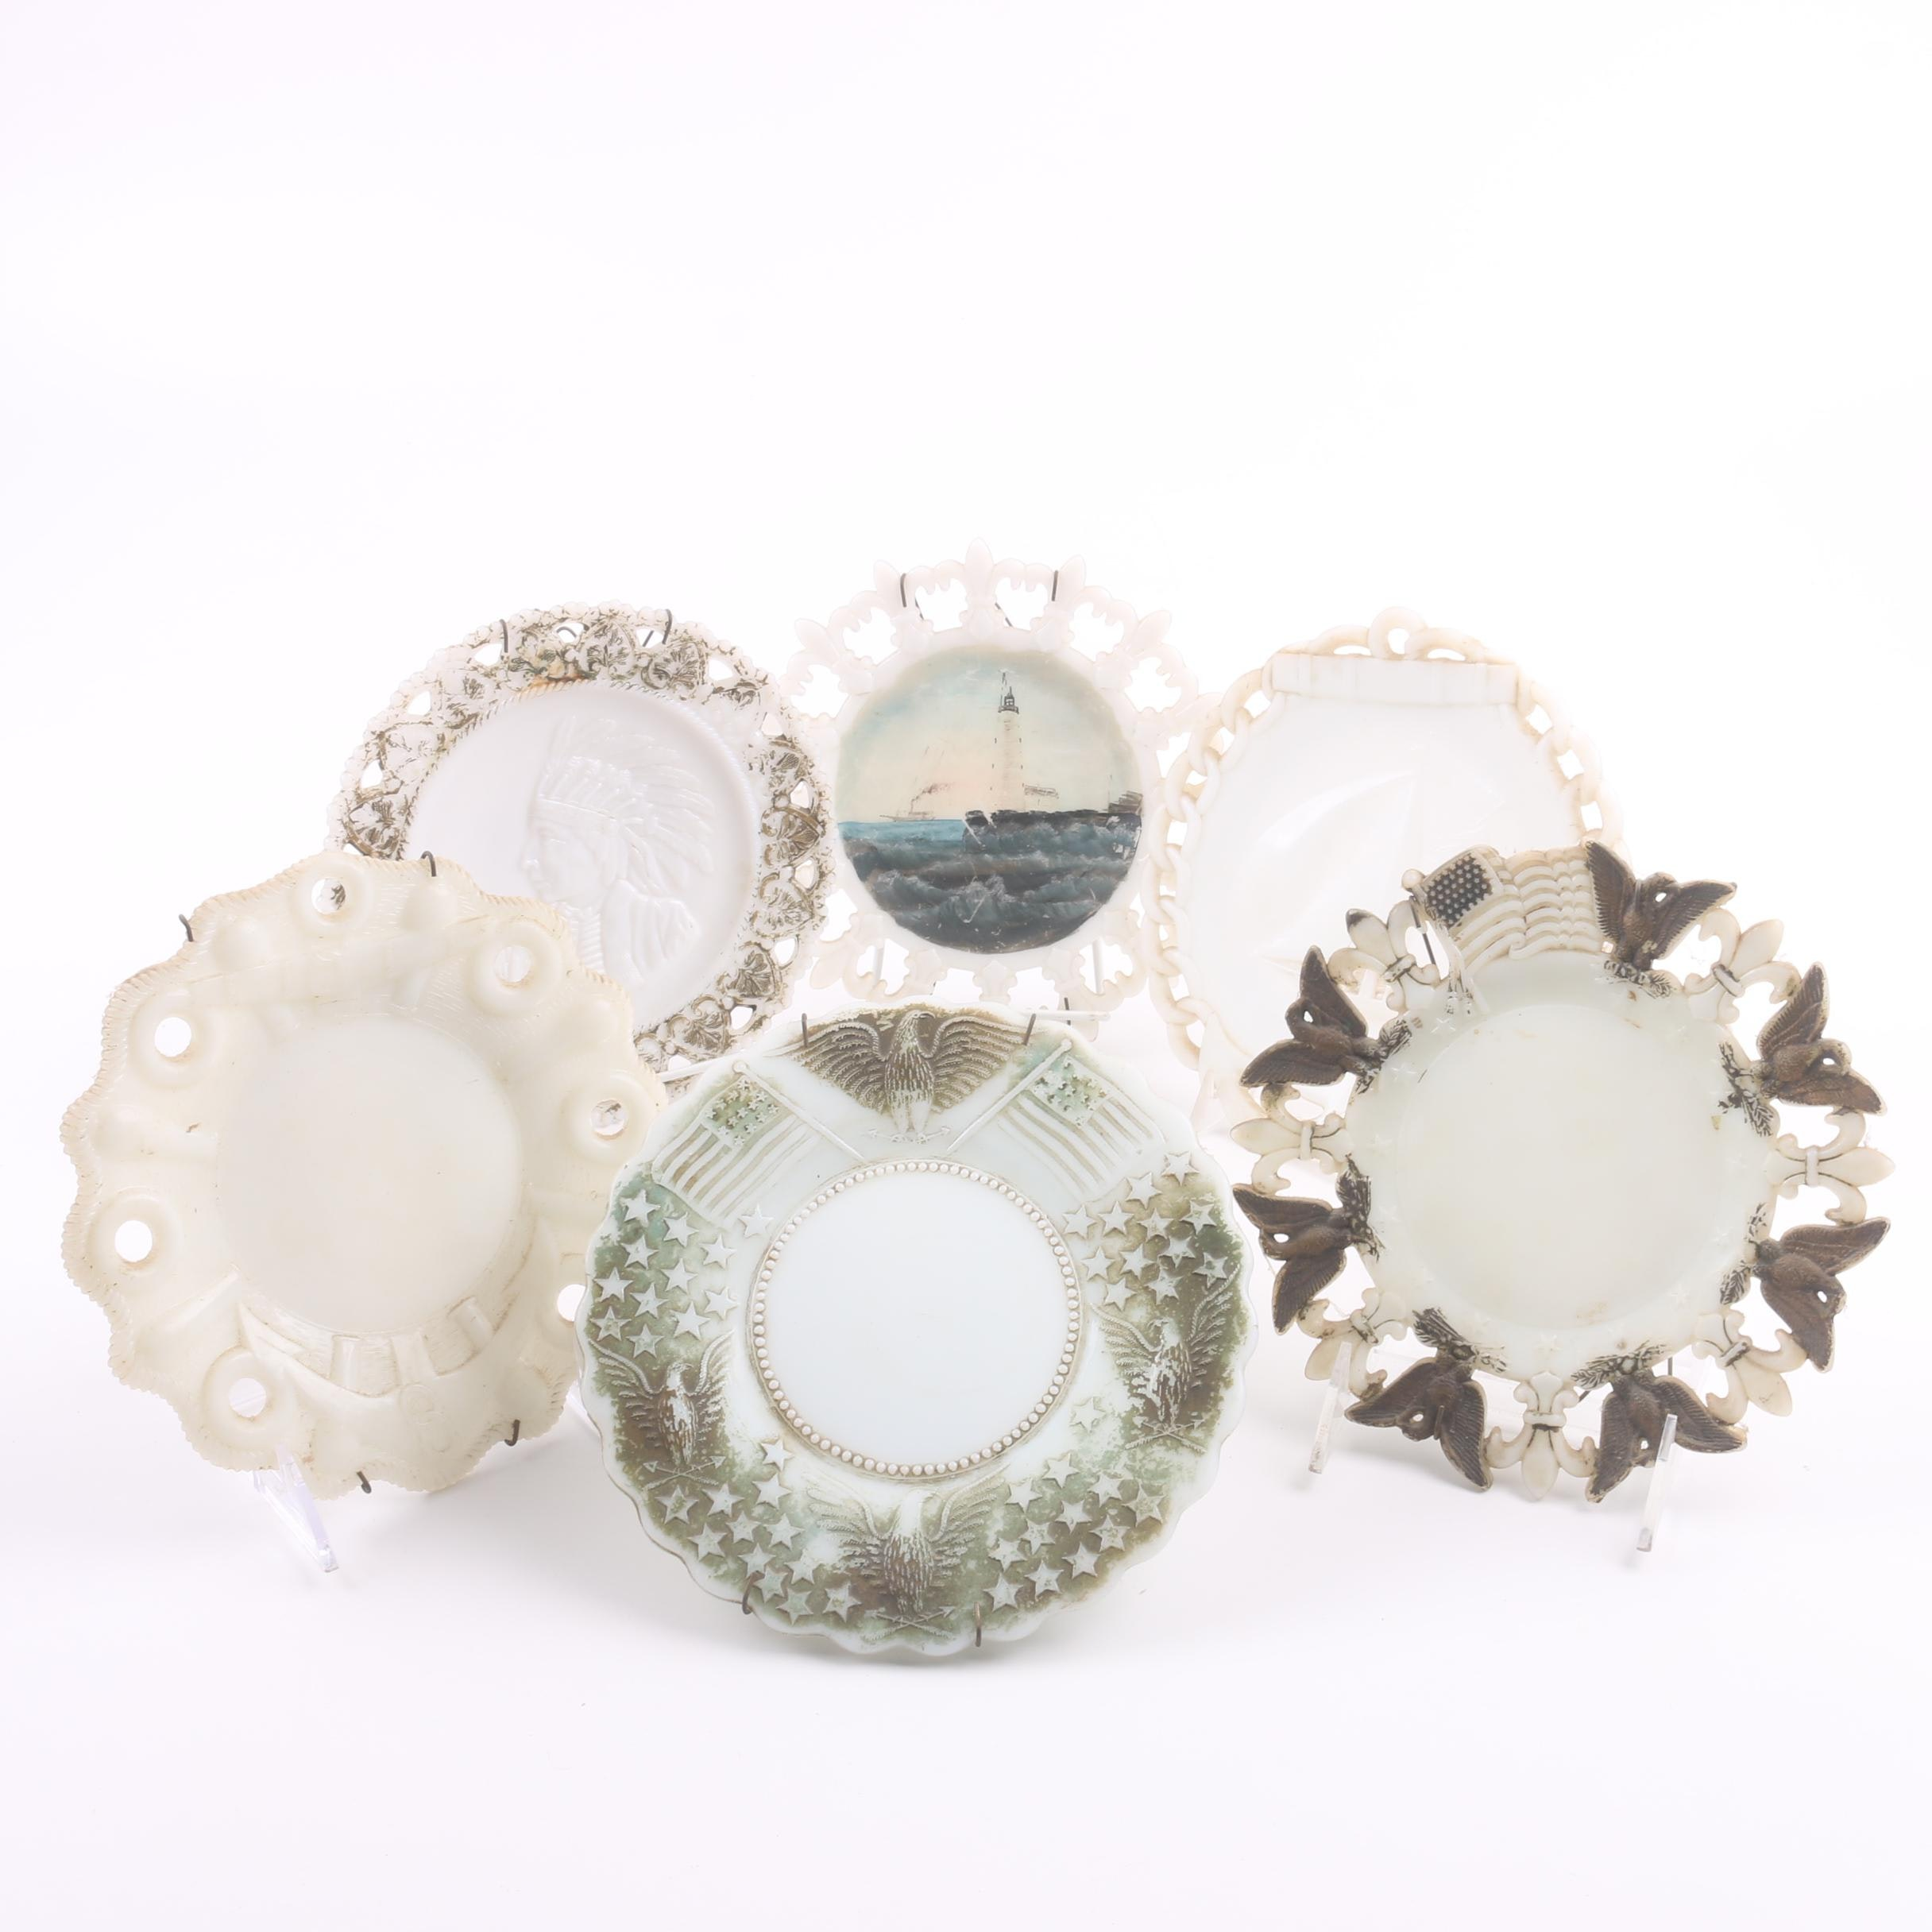 Vintage American Patriotic Milk Glass Plates and Assorted Plates